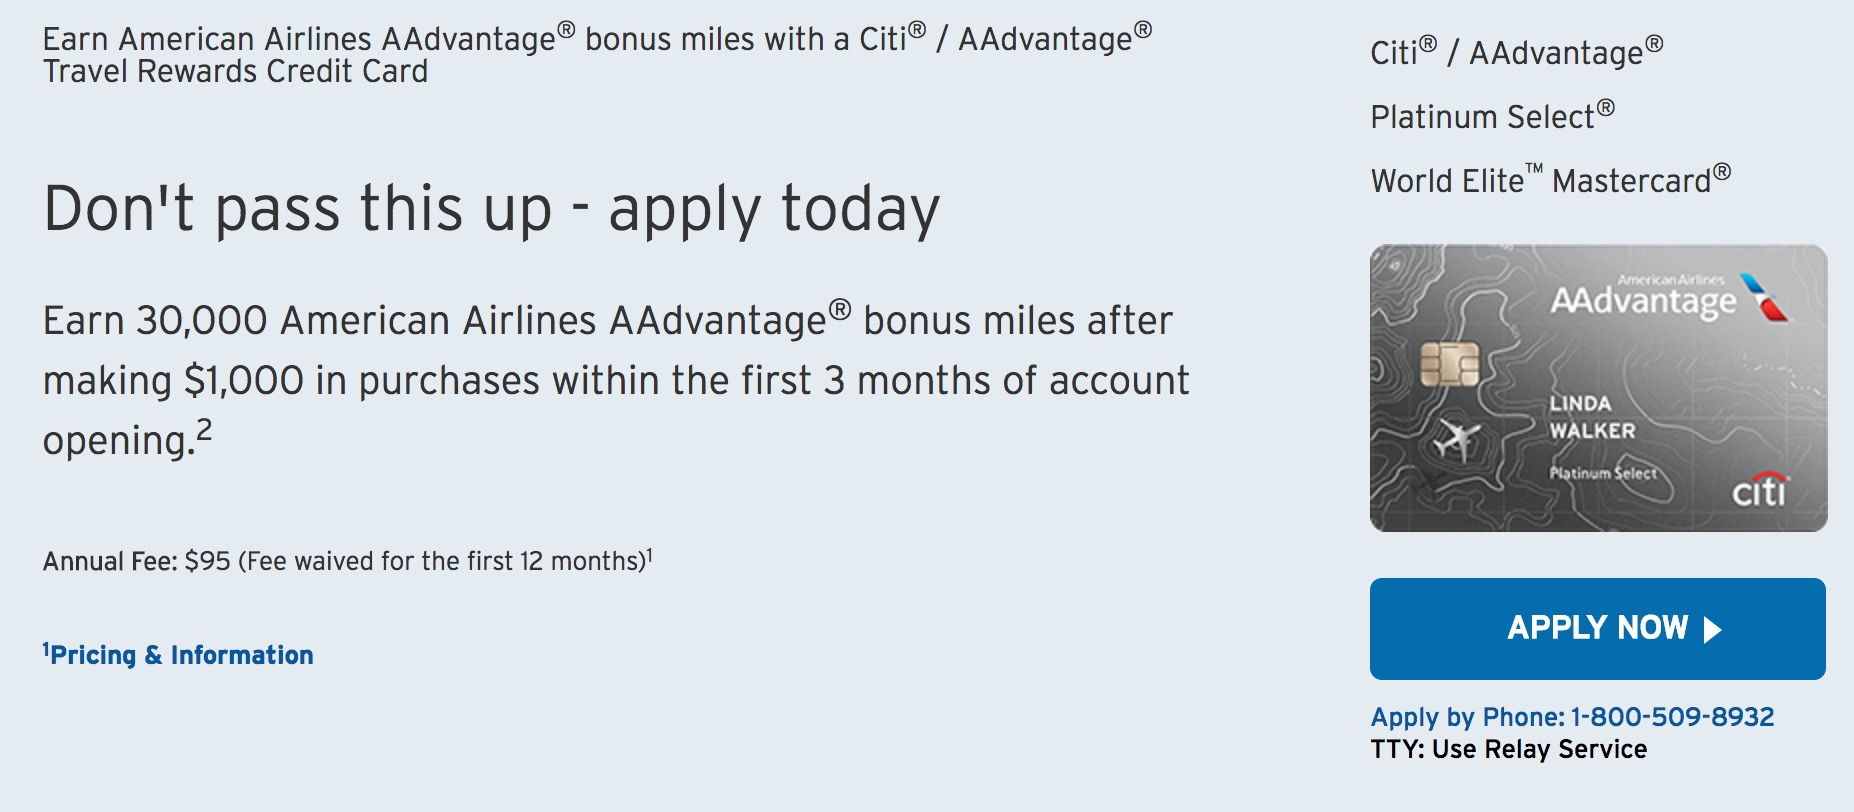 This public Citi AAdvantage link only offers 30,000 miles (but for less spend)